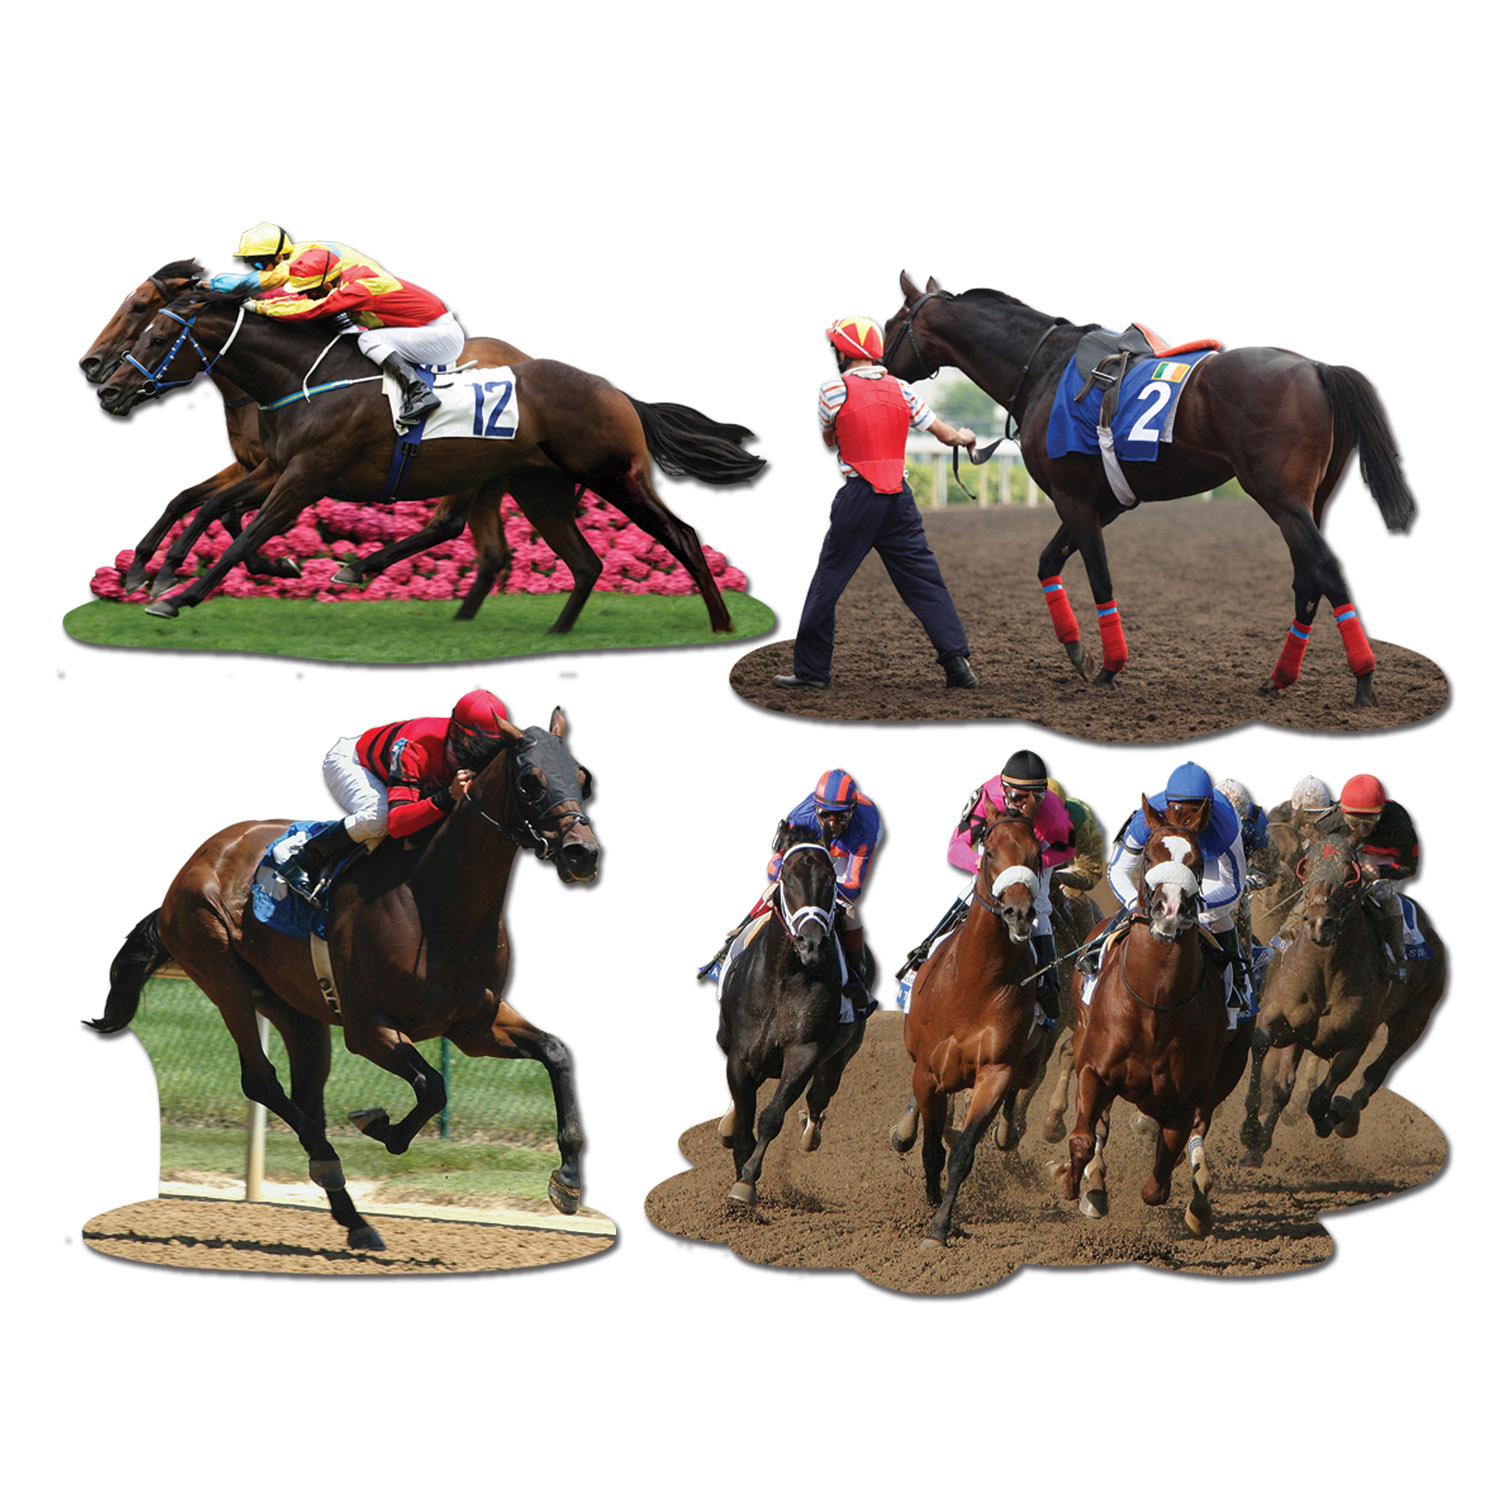 Horse Racing Cutouts (Pack of 12) Horse Racing Cutouts, decoration, derby, horse, racing, wholesale, inexpensive, bulk